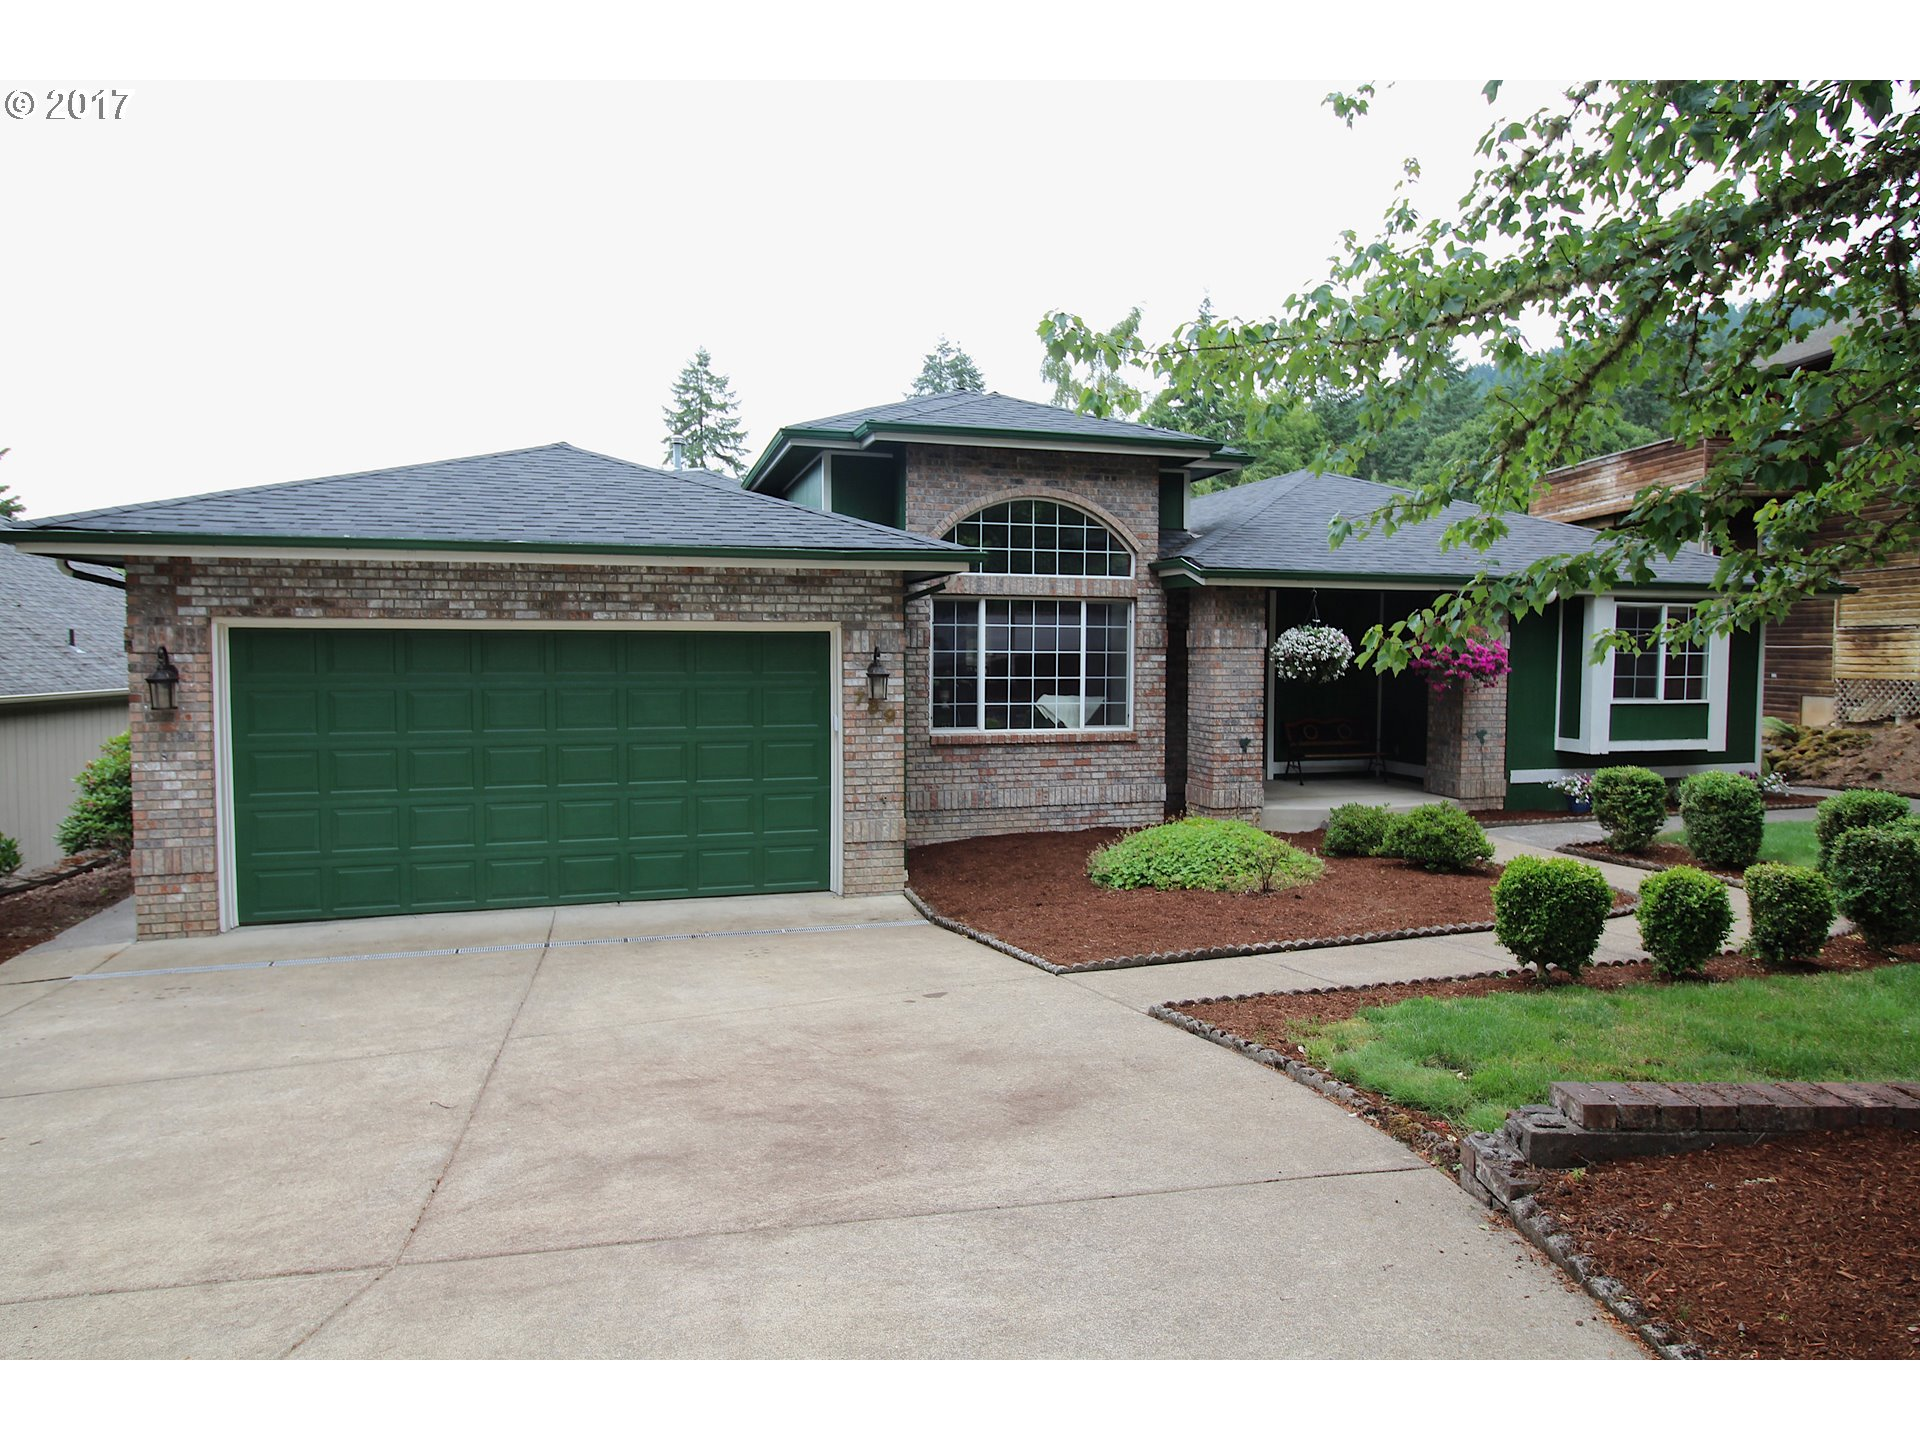 789 S 69TH ST, Springfield OR 97478